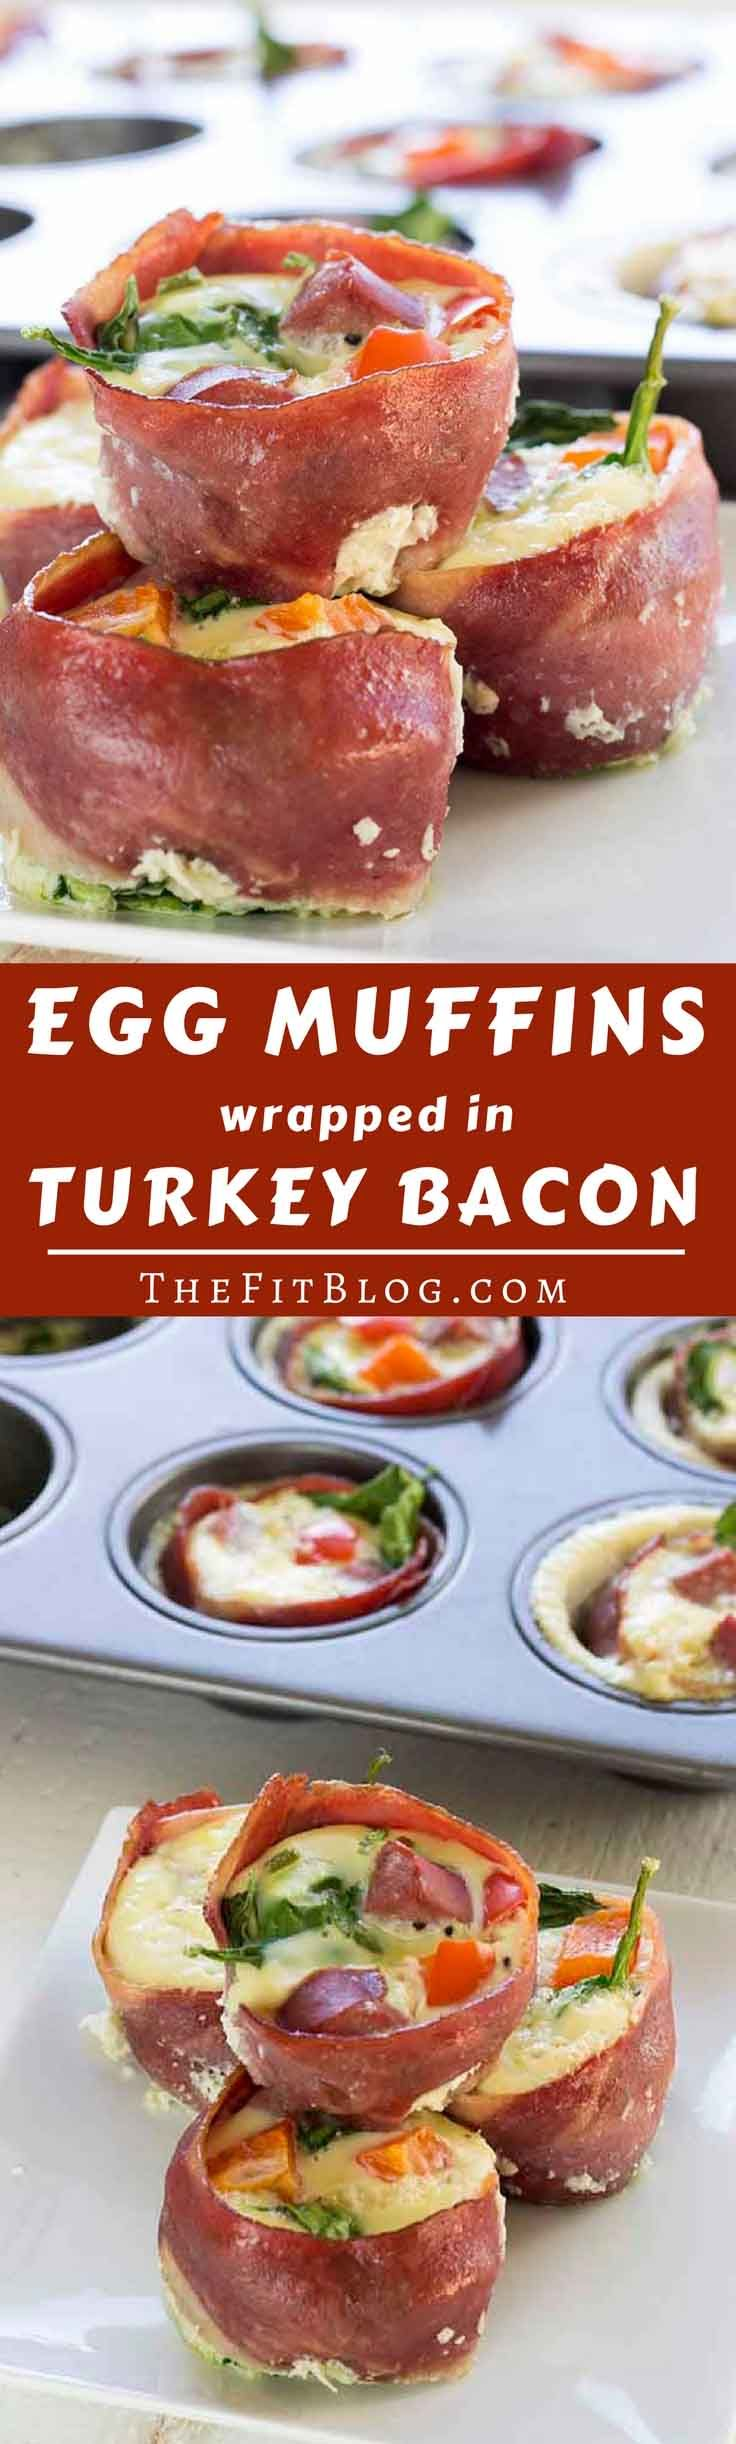 Healthy Egg Muffins With Lean Turkey Bacon - These healthy egg muffins take hardly any effort to make, taste amazing, and can be stored and reheated the next day. What more could you wish for in a recipe? (low carb, high protein, paleo, gluten free, diabetes friendly) via @TheFitBlog